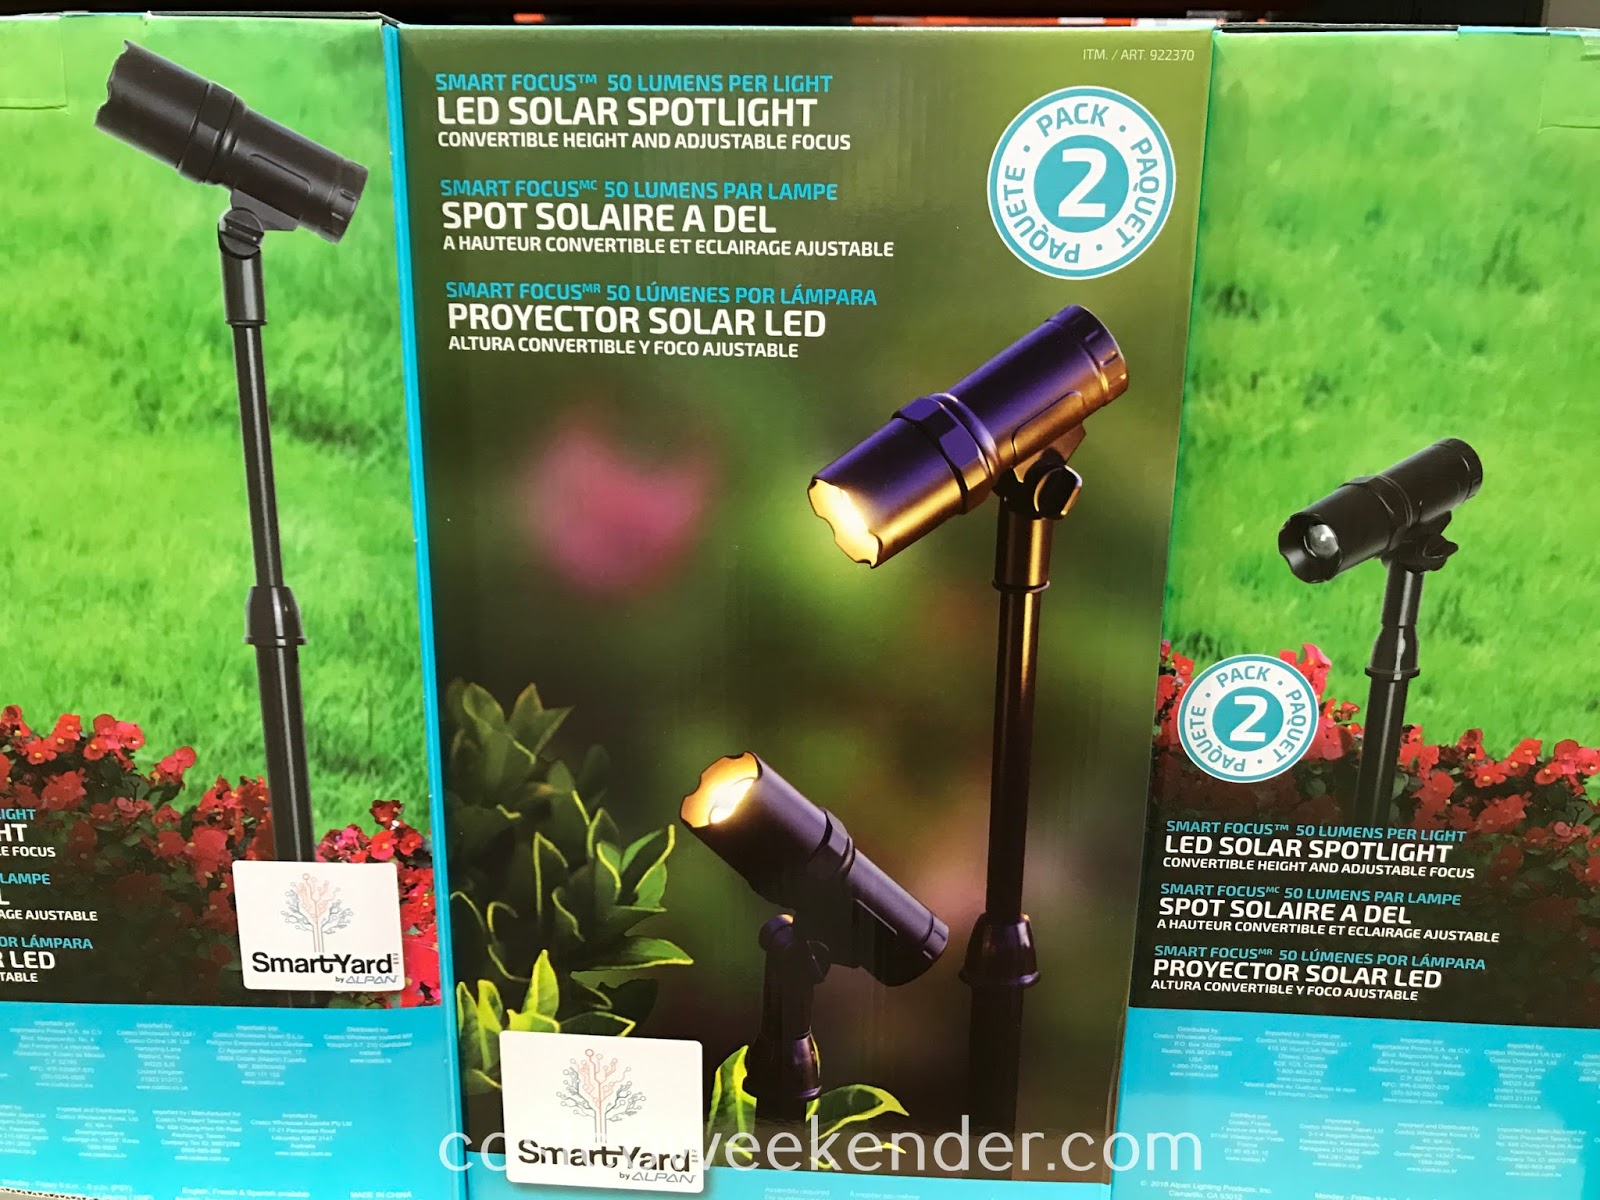 Get more lighting and add some curb appeal to your home with the Alpan SmartYard Smart Focus LED Solar Spotlight